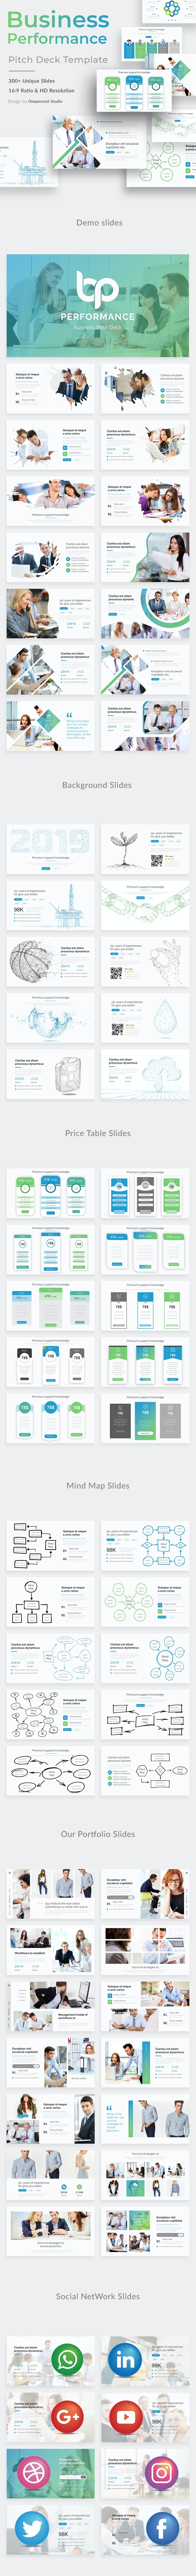 Business Performance Pitch Deck Powerpoint Template - Business PowerPoint Templates